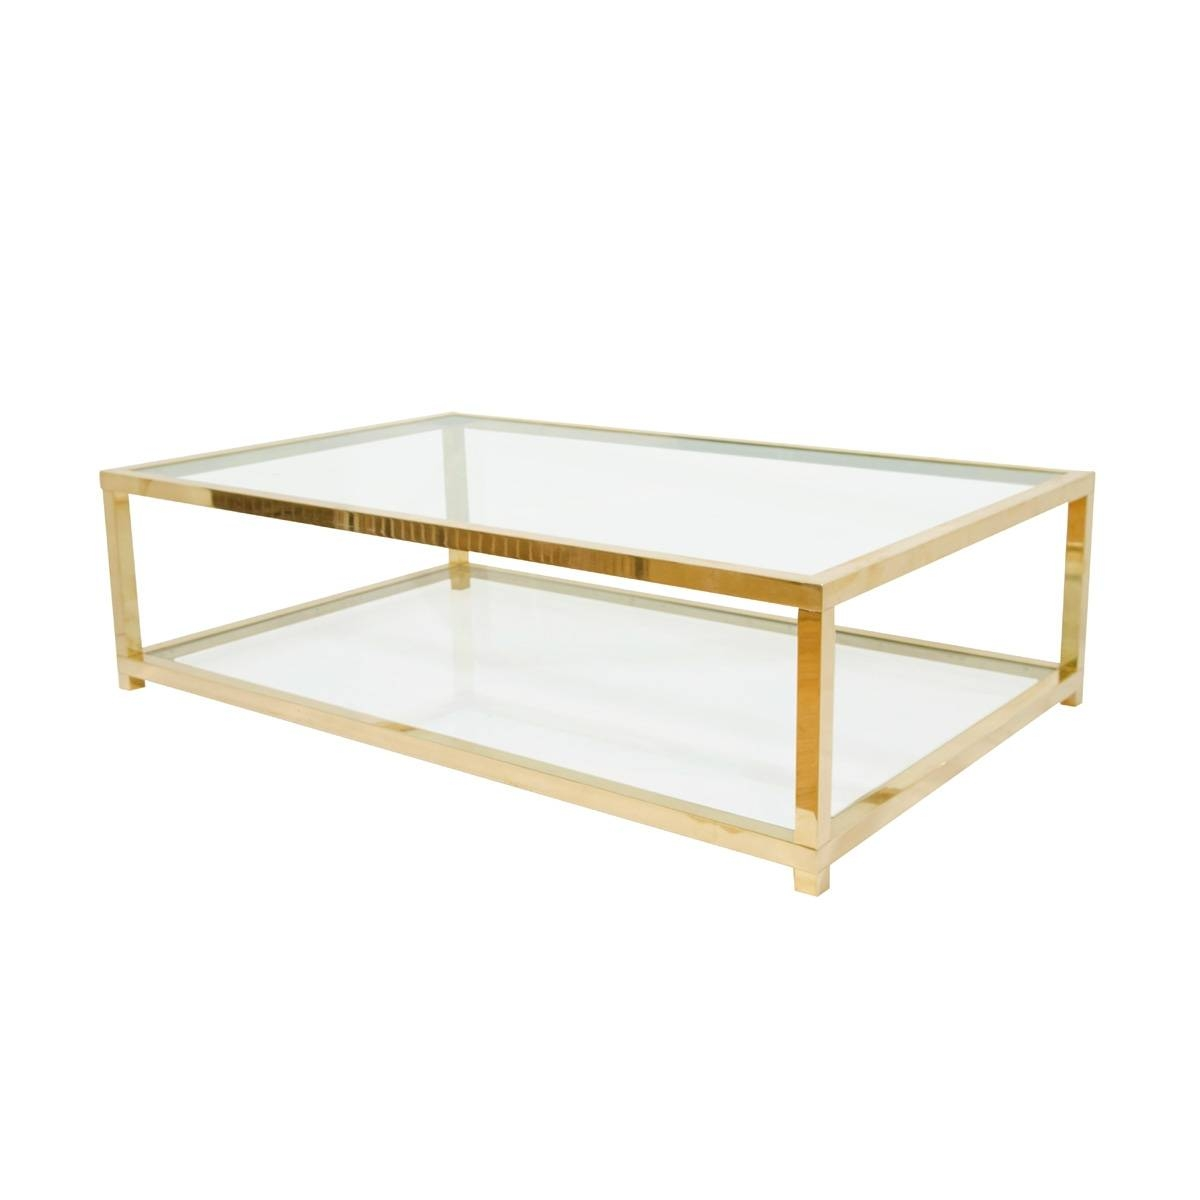 Antique Brass And Glass Coffee Table | Home Design Ideas throughout Antique Glass Coffee Tables (Image 5 of 30)